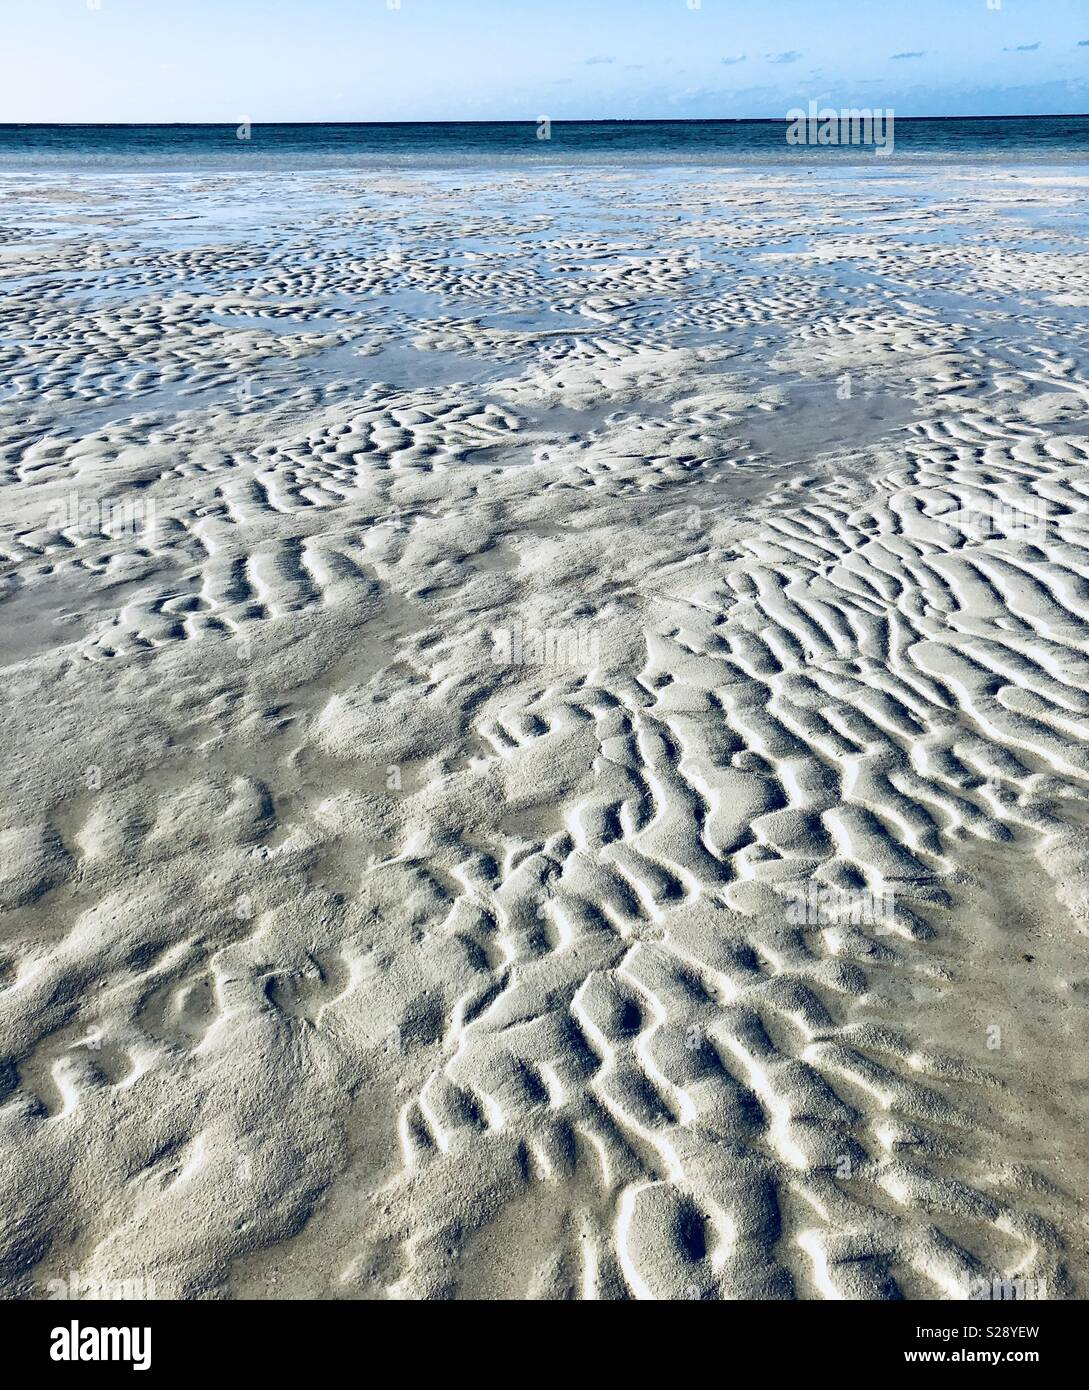 Wrinkles in sand at low tide - Stock Image